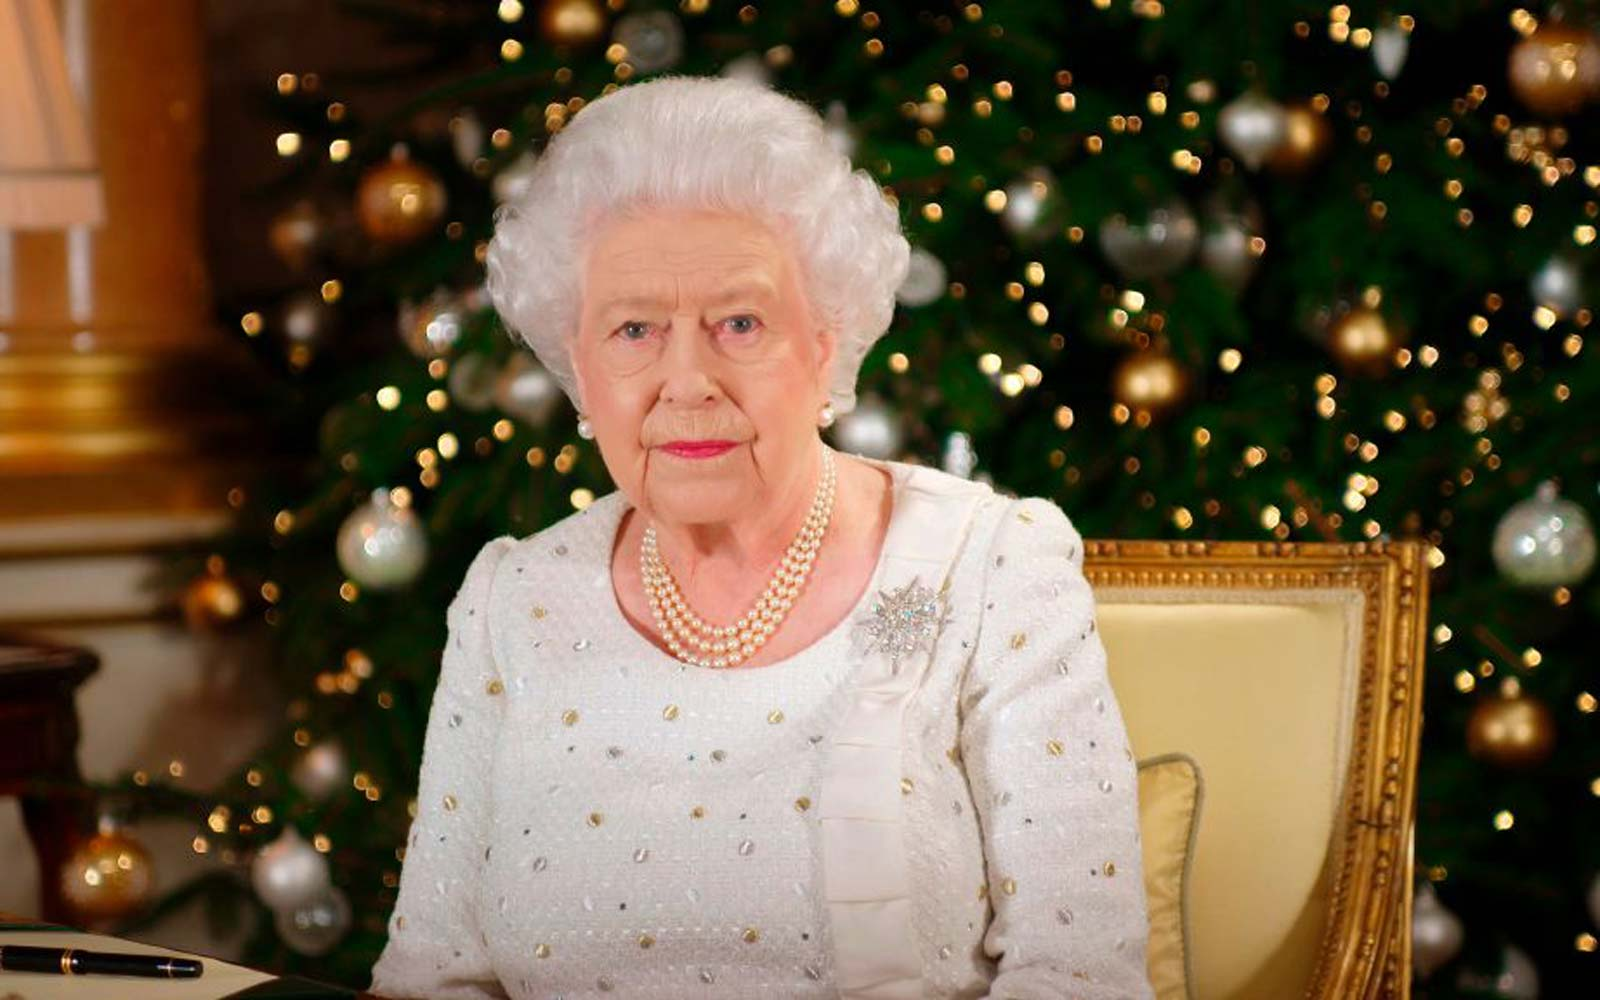 Queen Elizabeth Just Revealed Her Christmas Decorations at Buckingham Palace